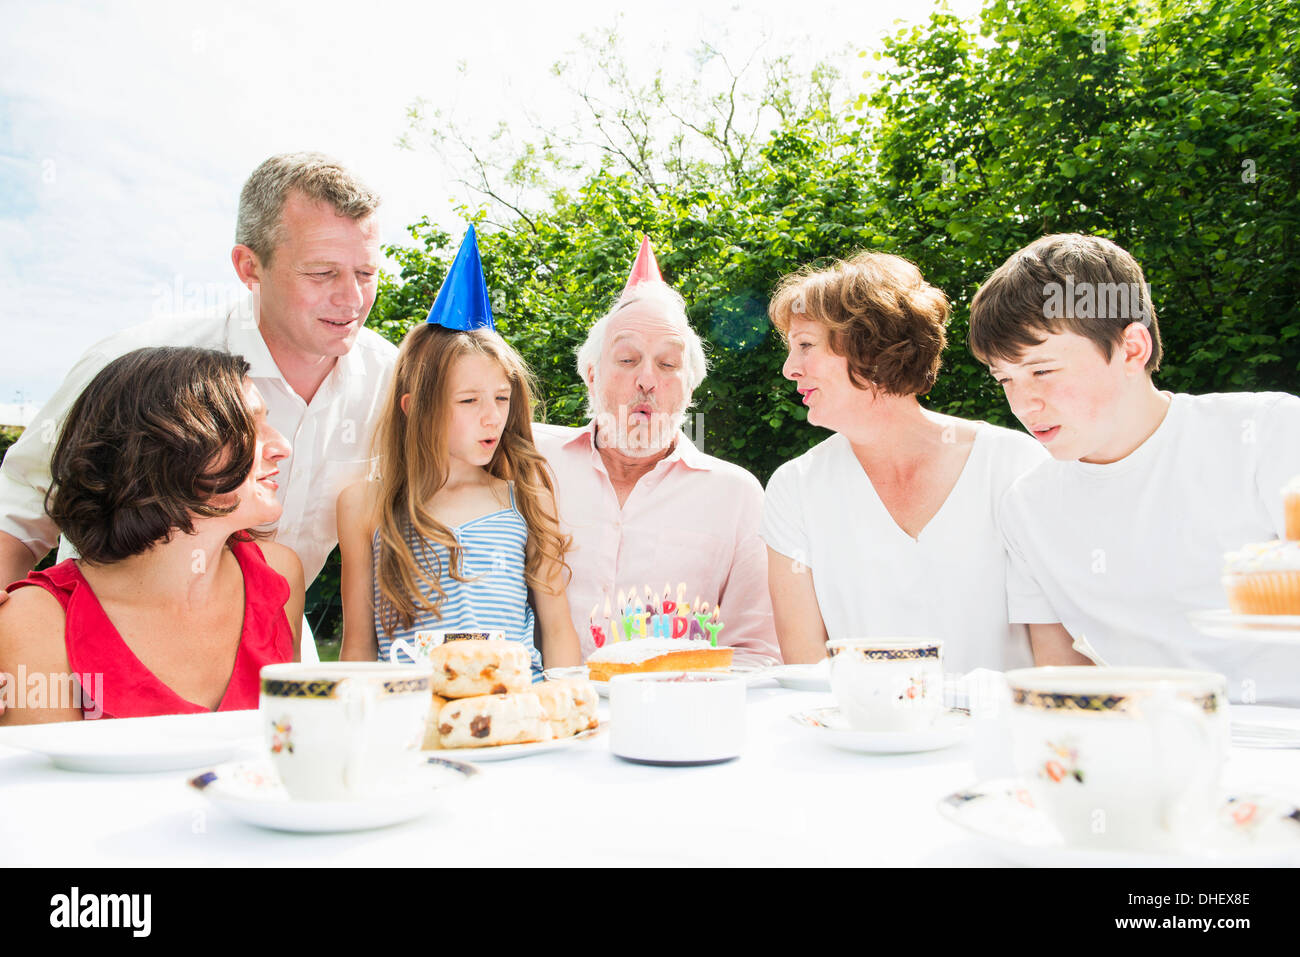 Family celebrating grandfather's birthday - Stock Image